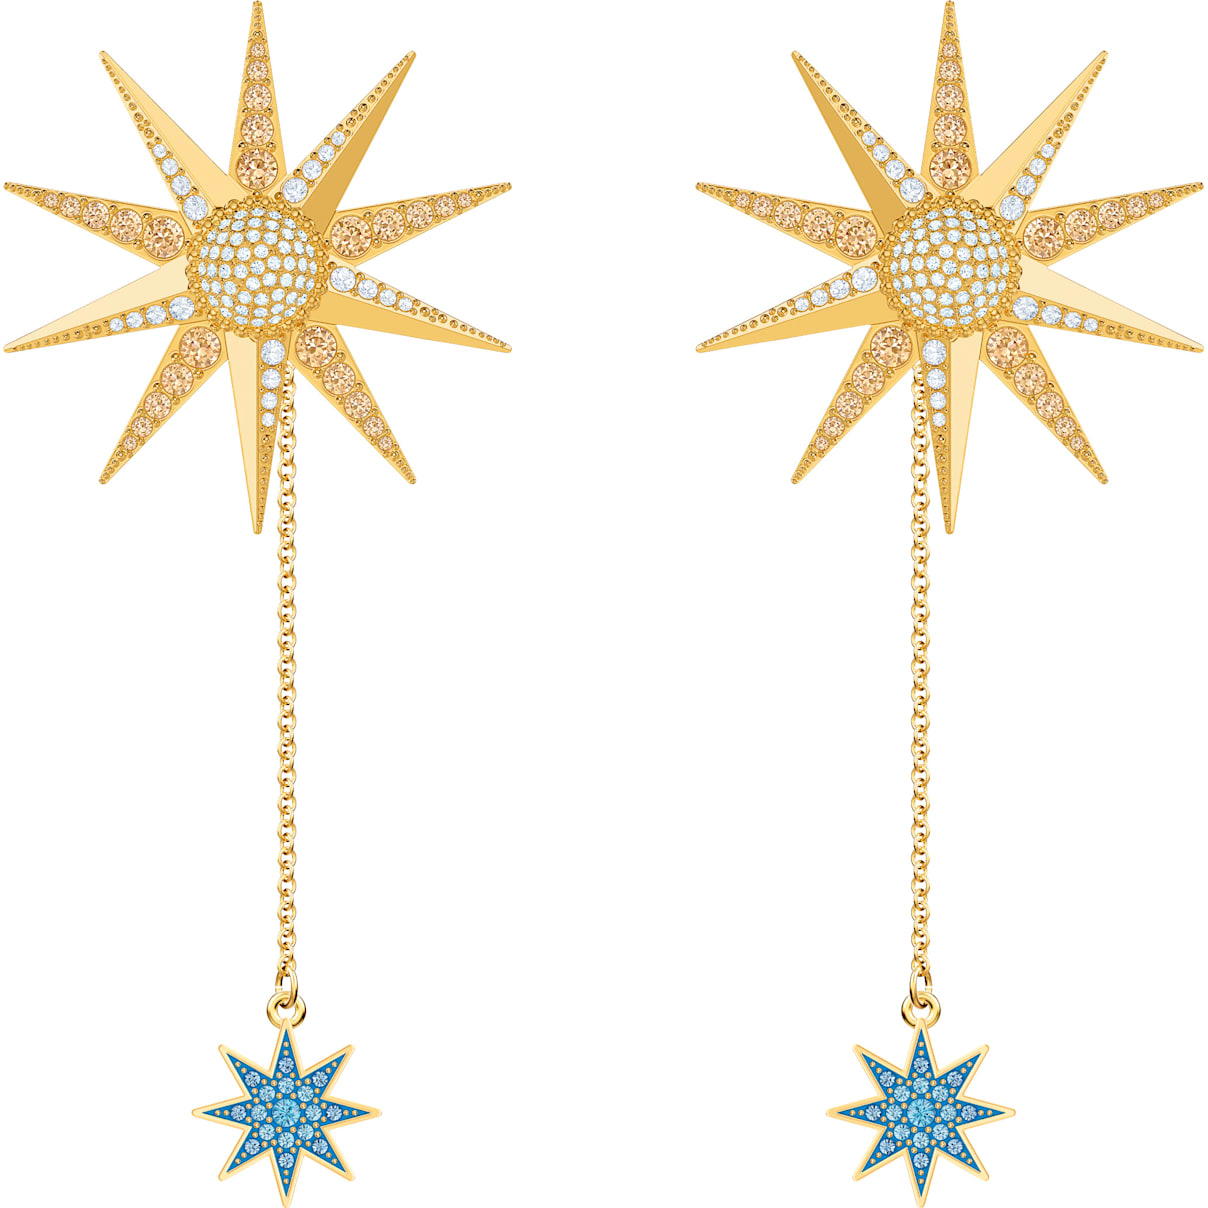 Swarovski Lucky Goddess Pierced Earrings, Multi-colored, Gold-tone plated